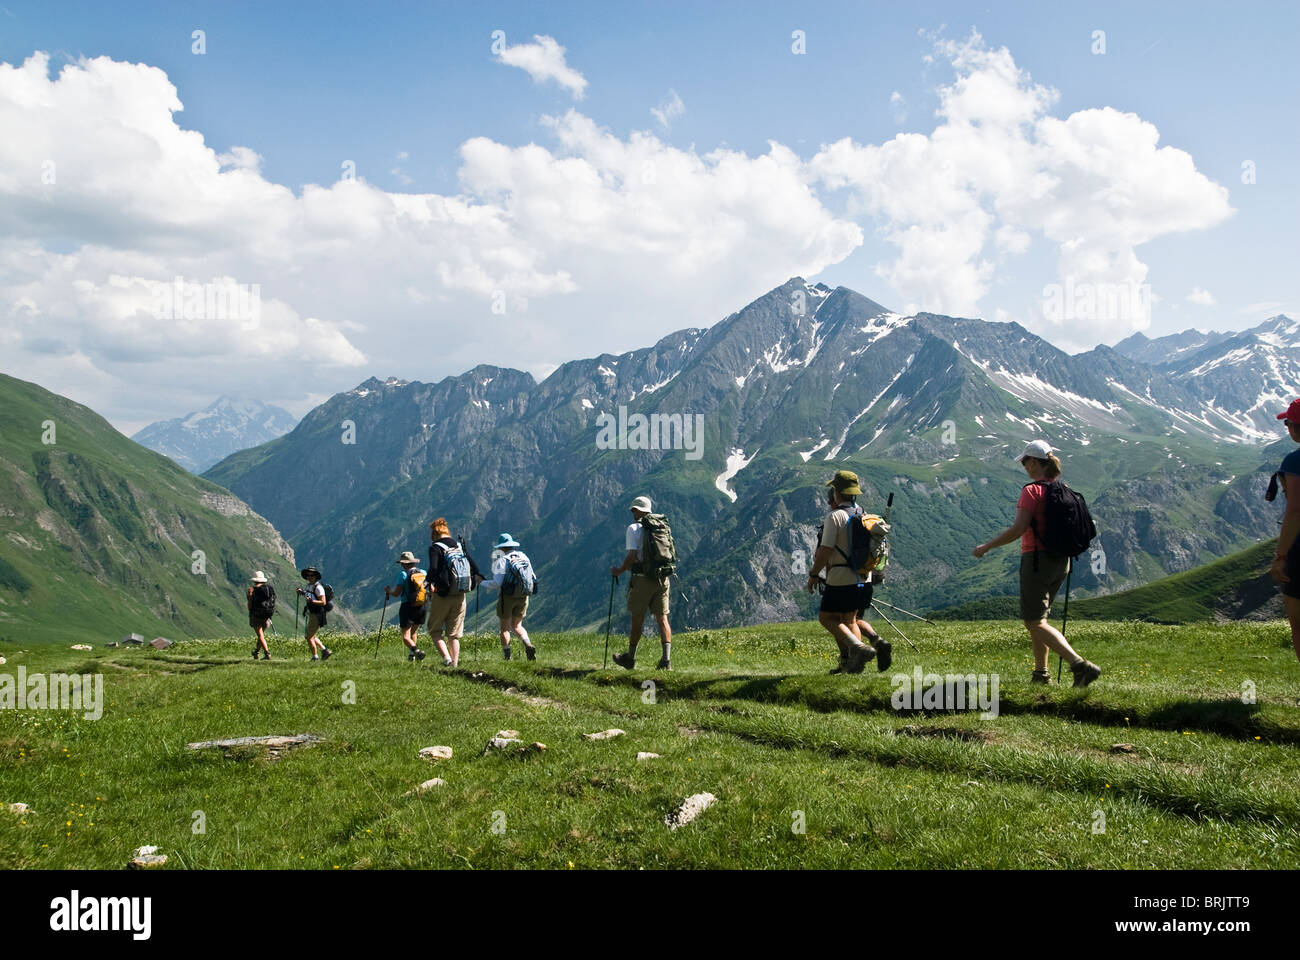 A group of hikers trek across a green mountainside on a partly cloudy day above Chamonix, France. - Stock Image